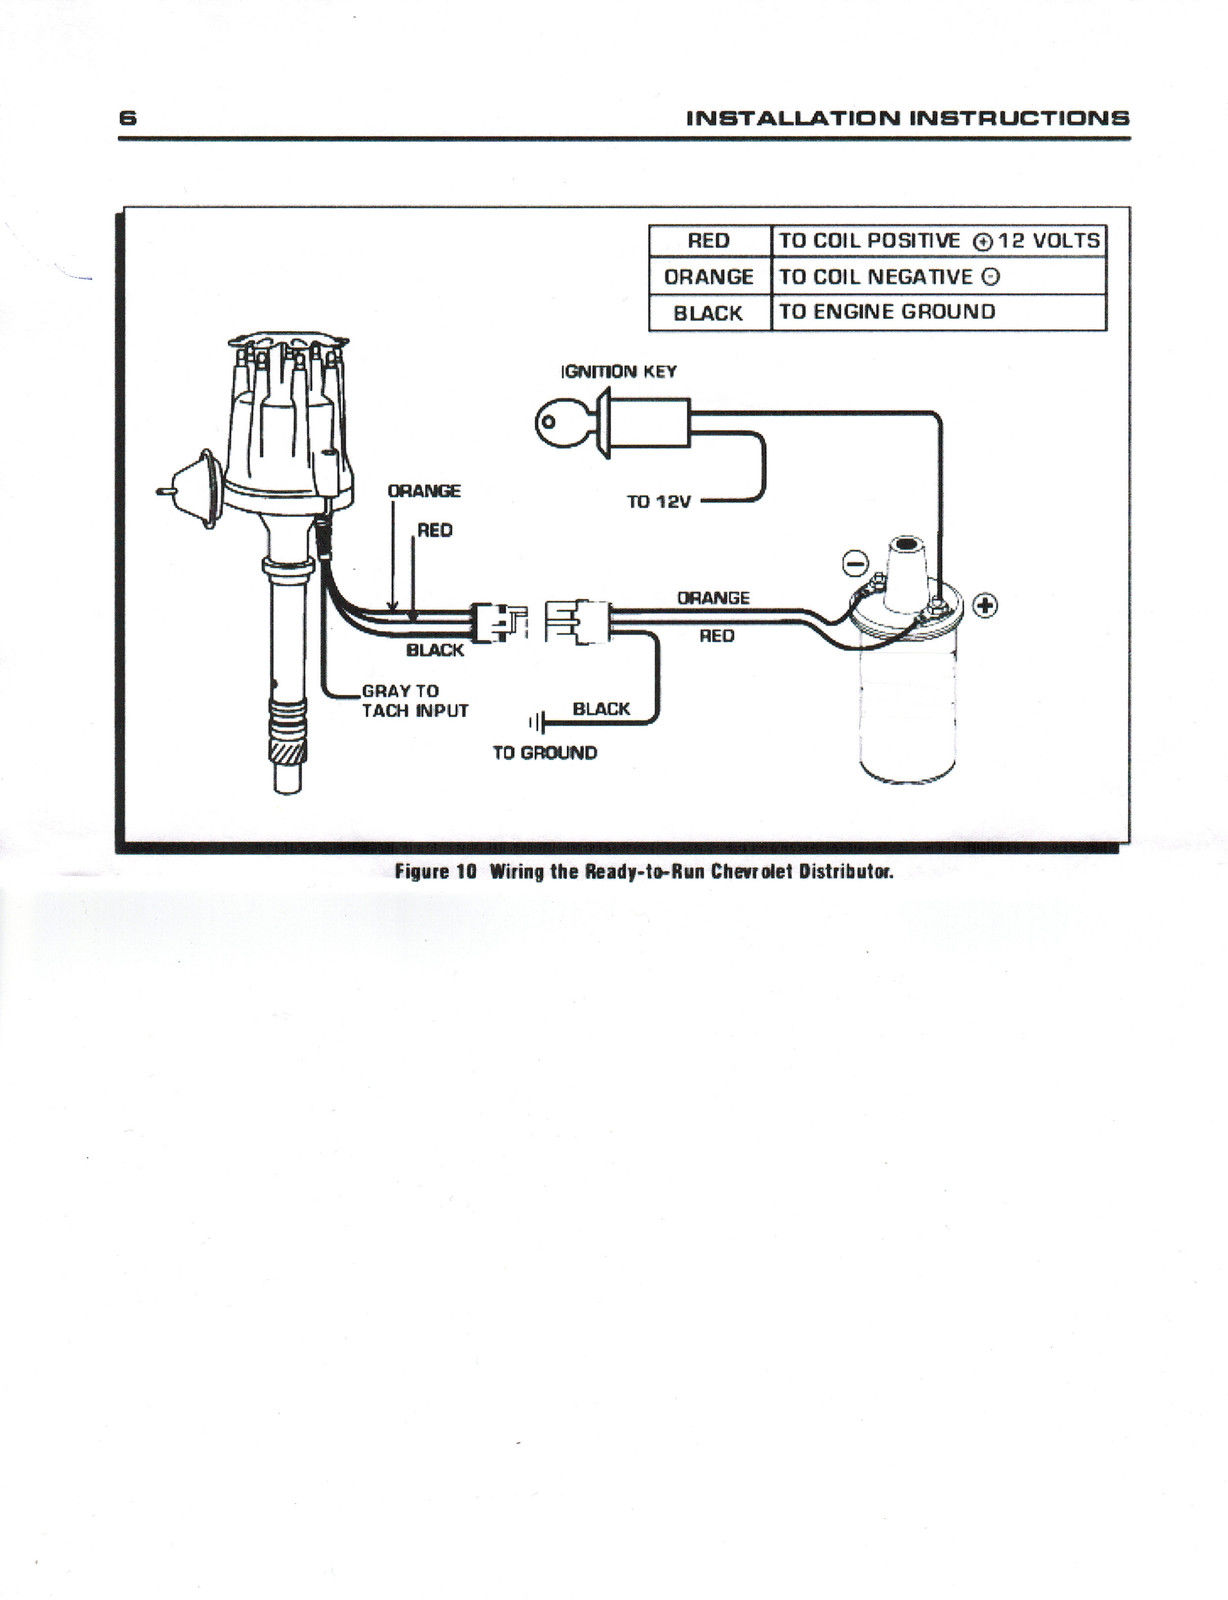 Ford 302 Hei Distributor Wiring Diagram - Wiring Diagram Perform  energy-satisfied - energy-satisfied.bovaribernesiclub.itenergy-satisfied.bovaribernesiclub.it